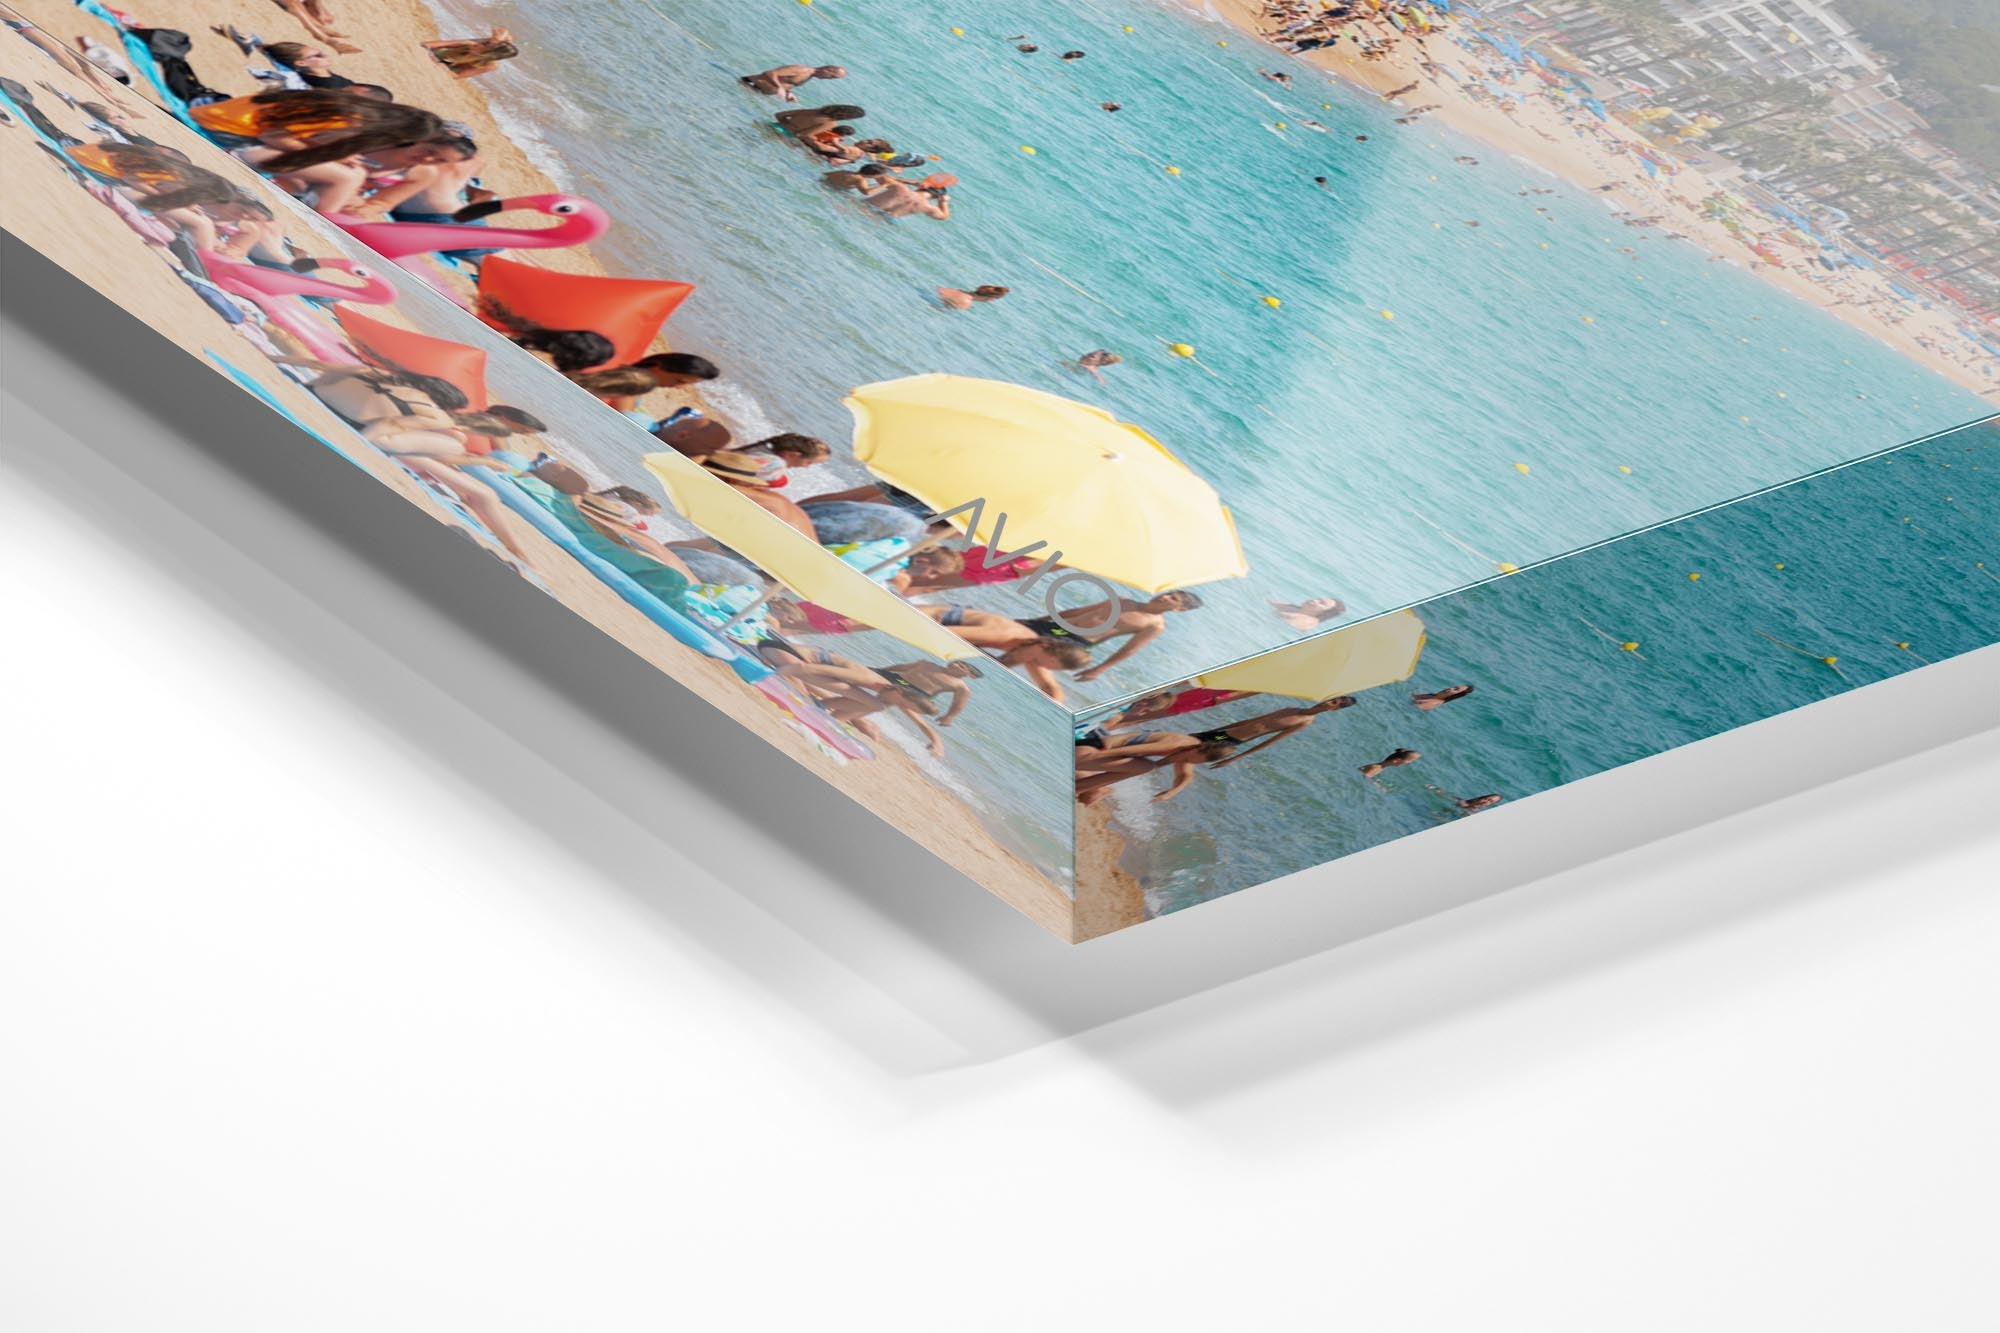 Bright colors of people and umbrellas along Lloret de Mar beach in an acrylic/perspex frame